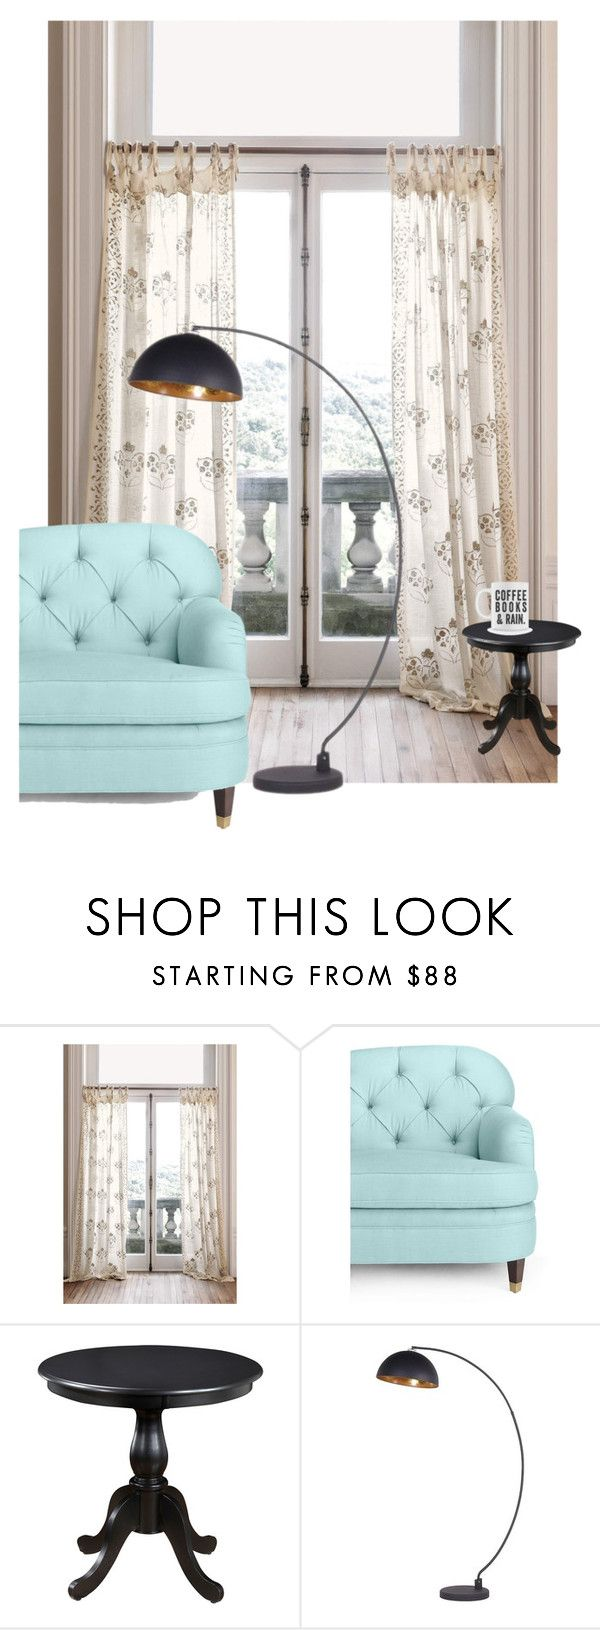 """""""Relax"""" by eleonora199 on Polyvore featuring interior, interiors, interior design, home, home decor, interior decorating, Anthropologie and Kate Spade"""